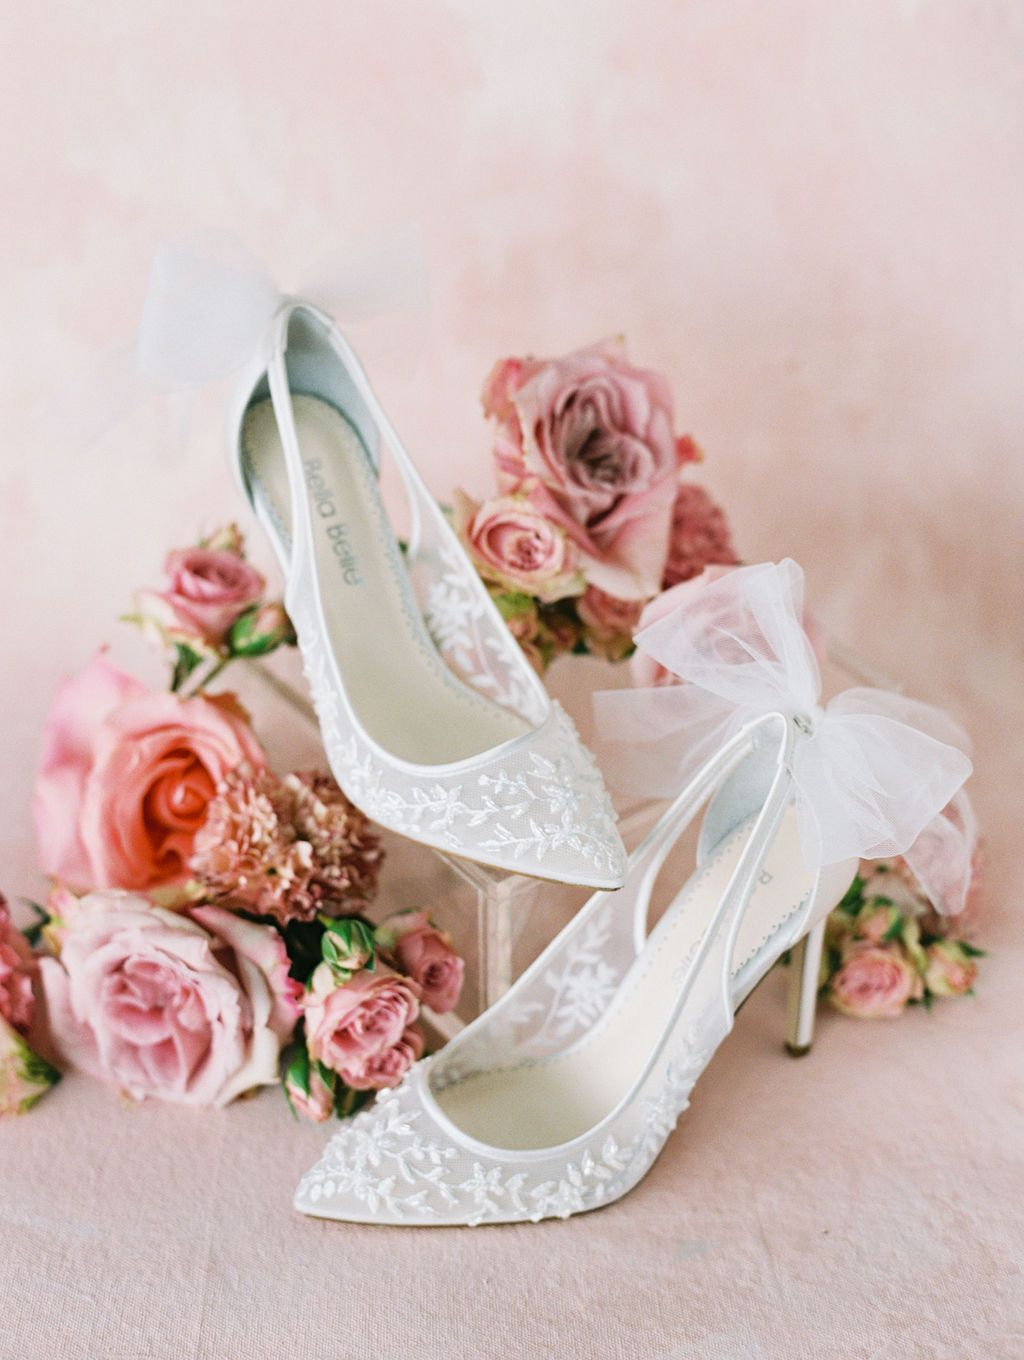 Floral Beaded Wedding Shoes In 2021 Wedding Heels Wedding Shoes Heels Bridal Shoes